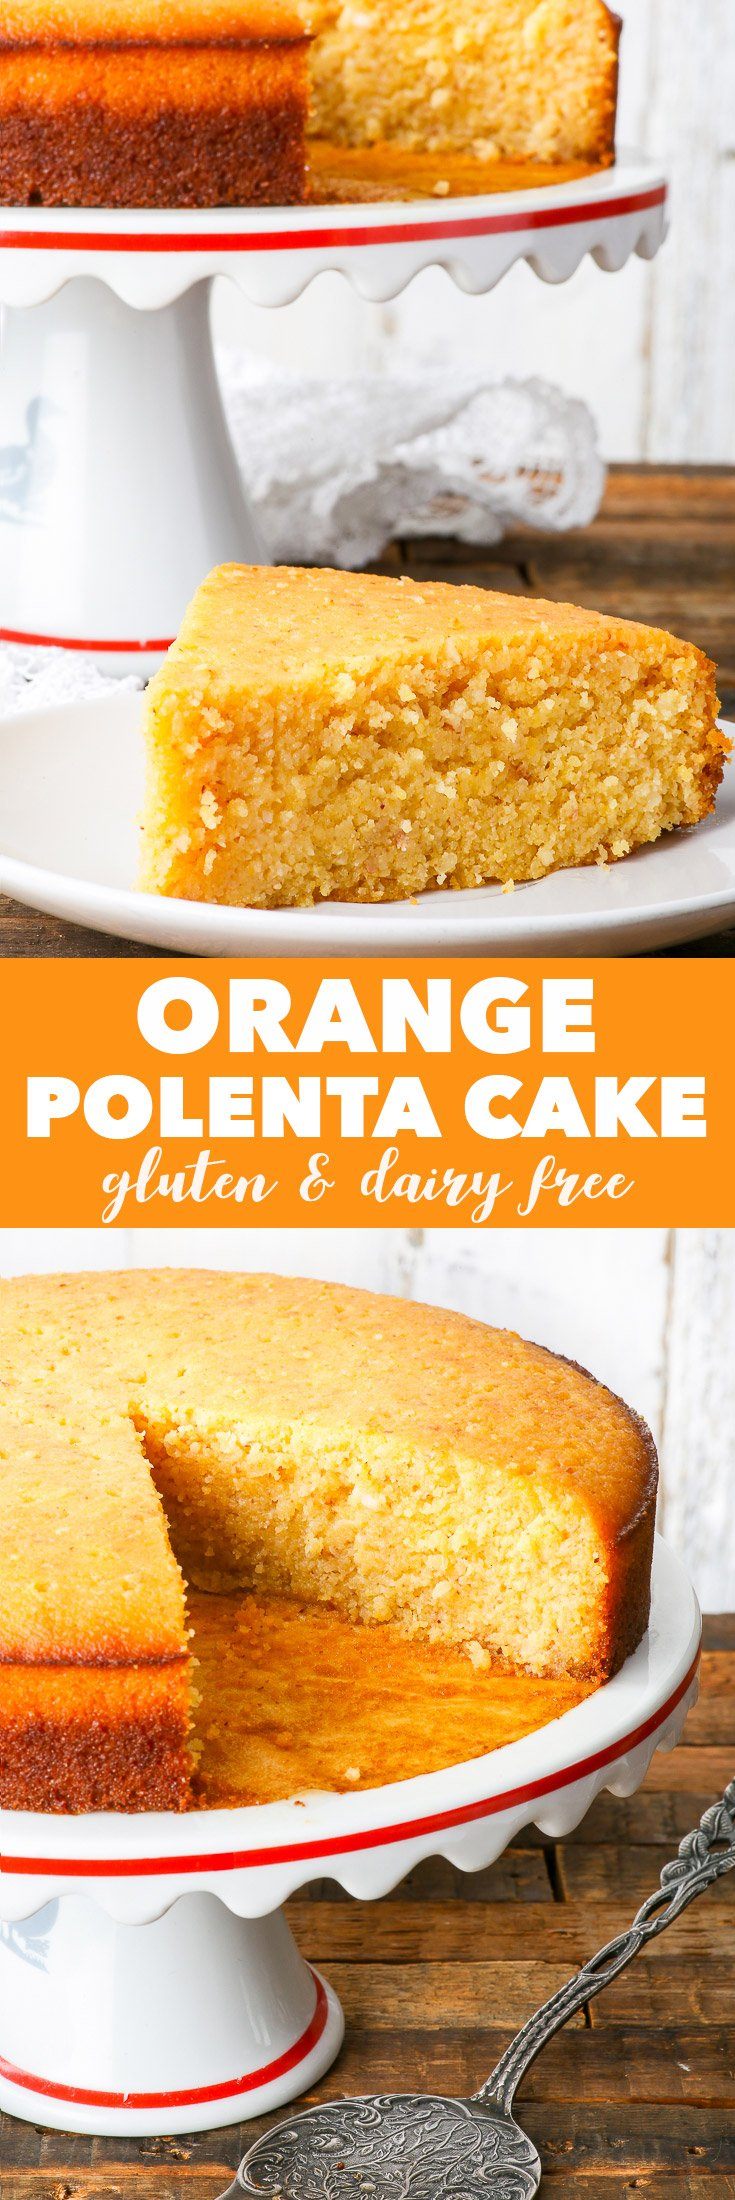 Gluten & Dairy Free Orange Polenta Cake {gluten, dairy, soy, peanut & ref. sugar free} - This gluten and dairy free orange polenta cake is supercharged with citrusy goodness. It's soft and dense, moist and crumbly, and most certainly delicious. The cake is soaked with an orange and lime syrup, which brings it to a whole new level.